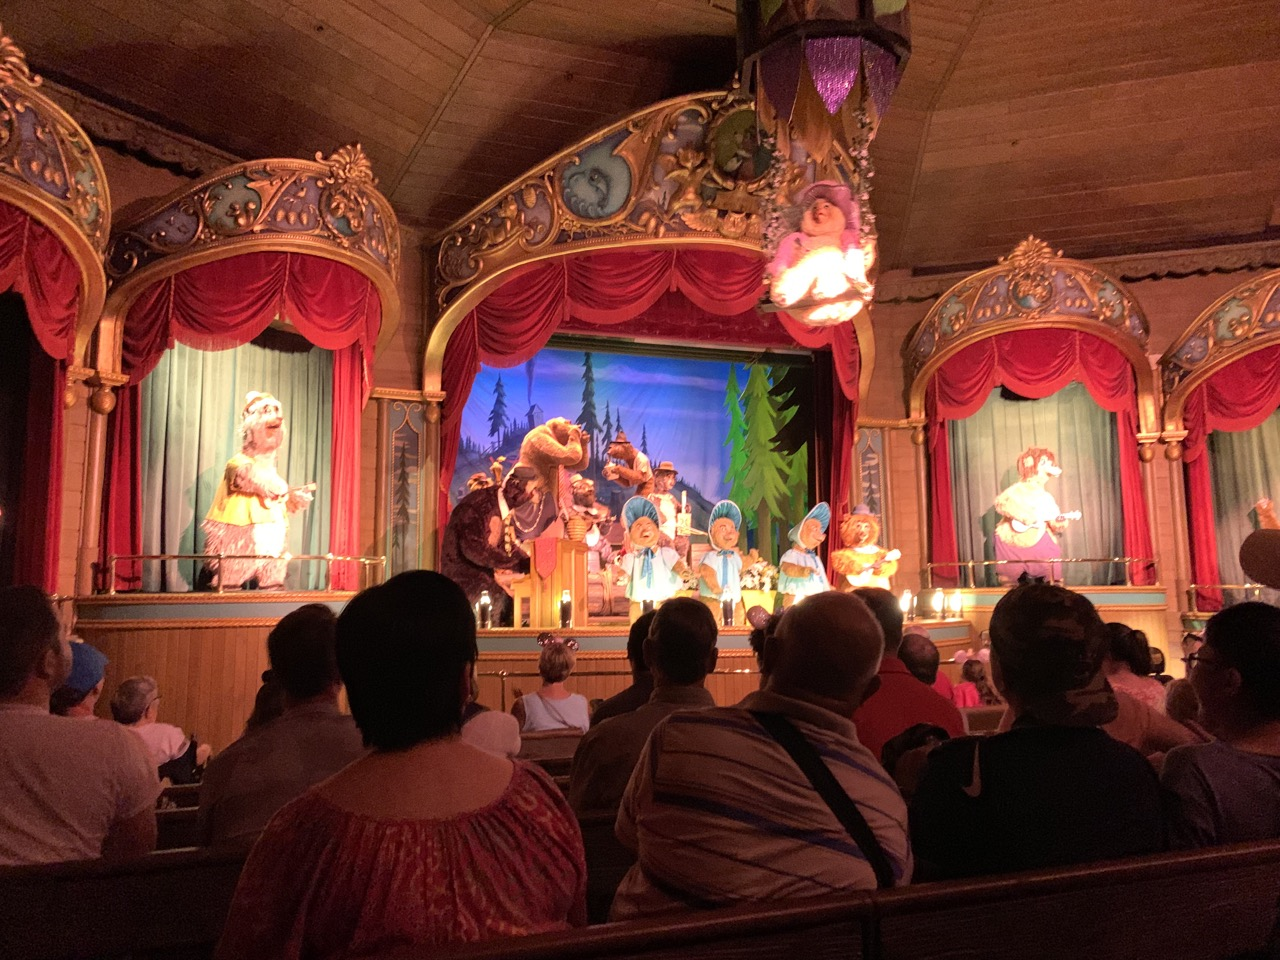 magic kingdom rides 12 country bear jamboree.jpeg